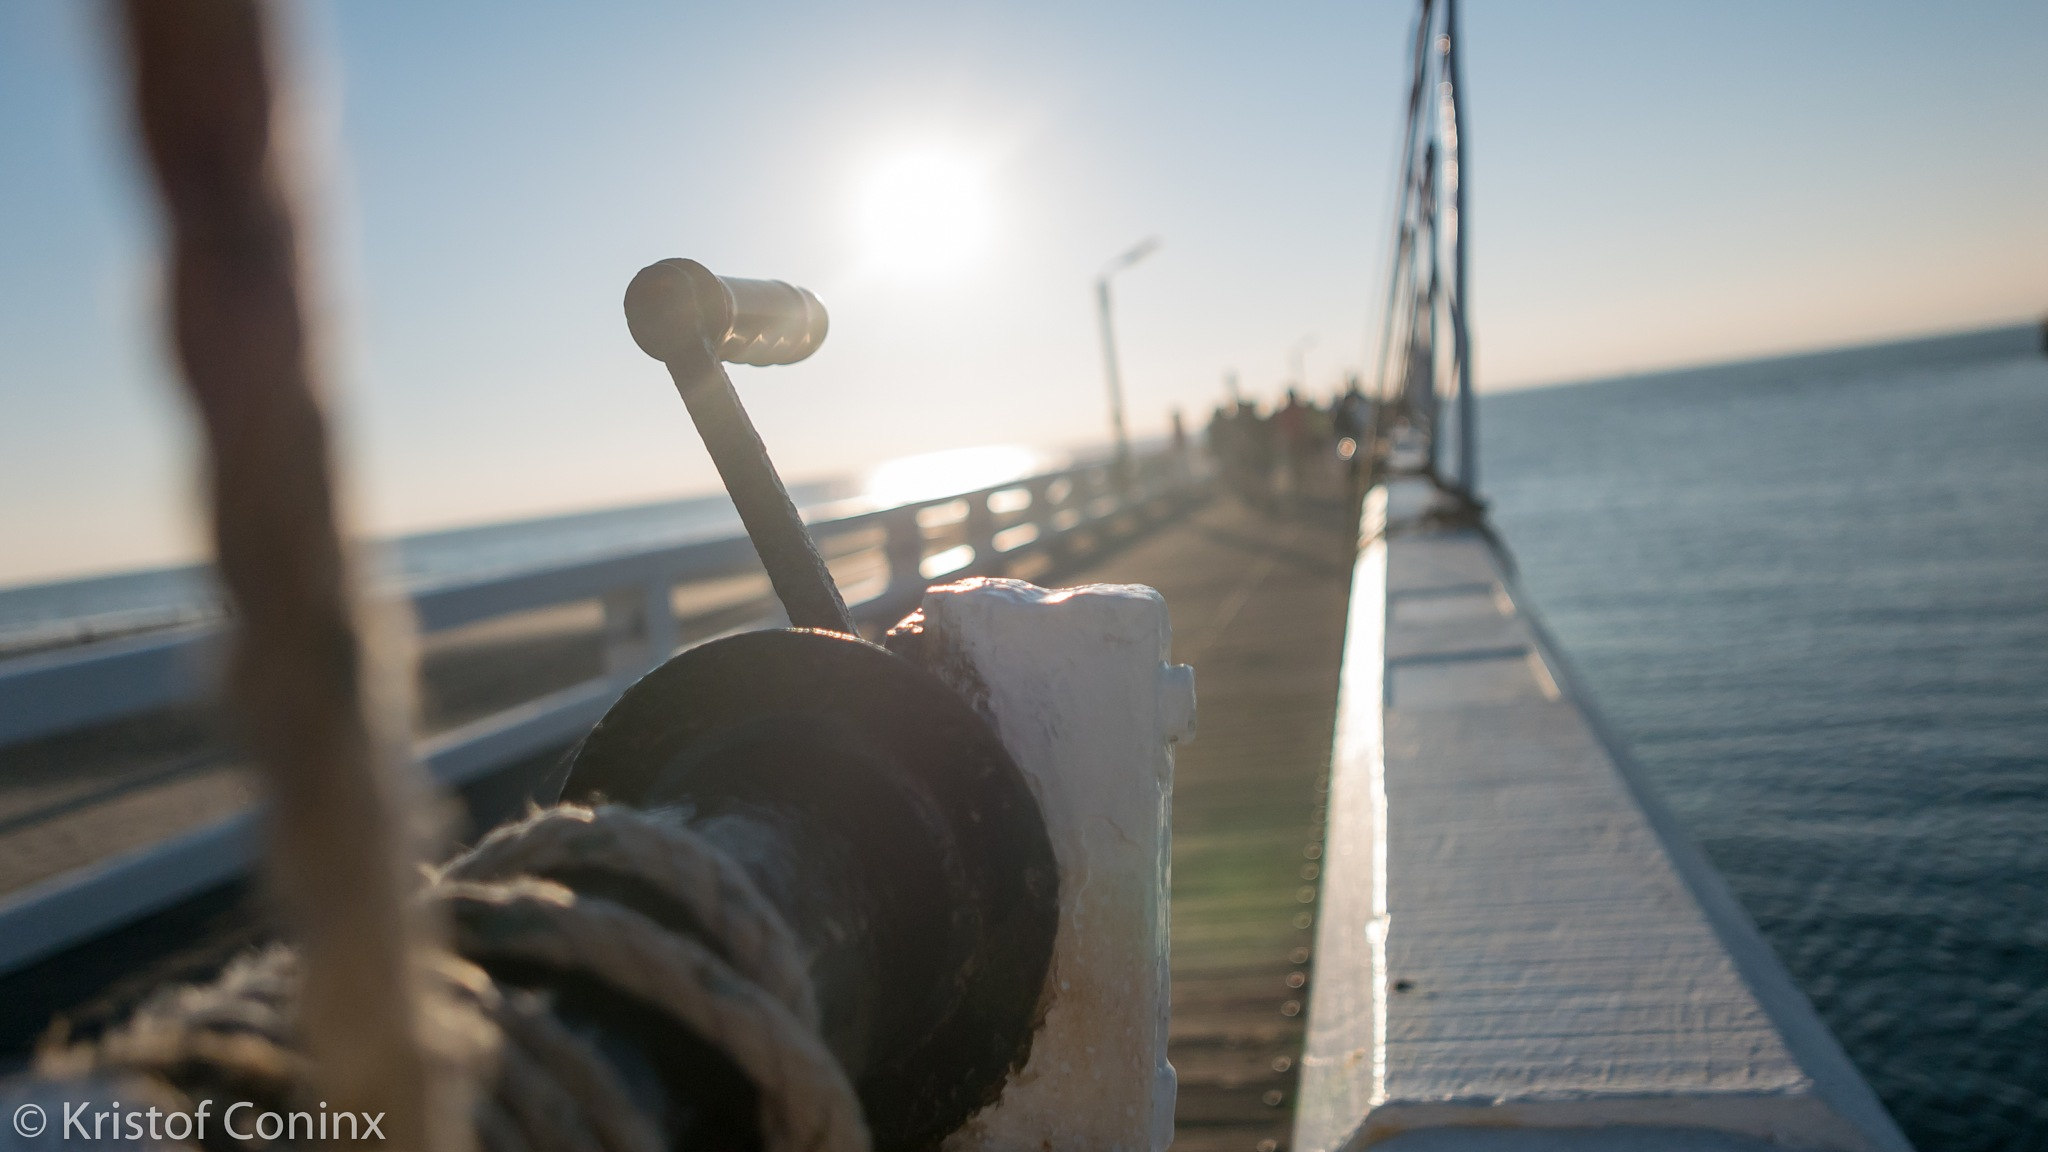 Pier review by Kristof Coninx